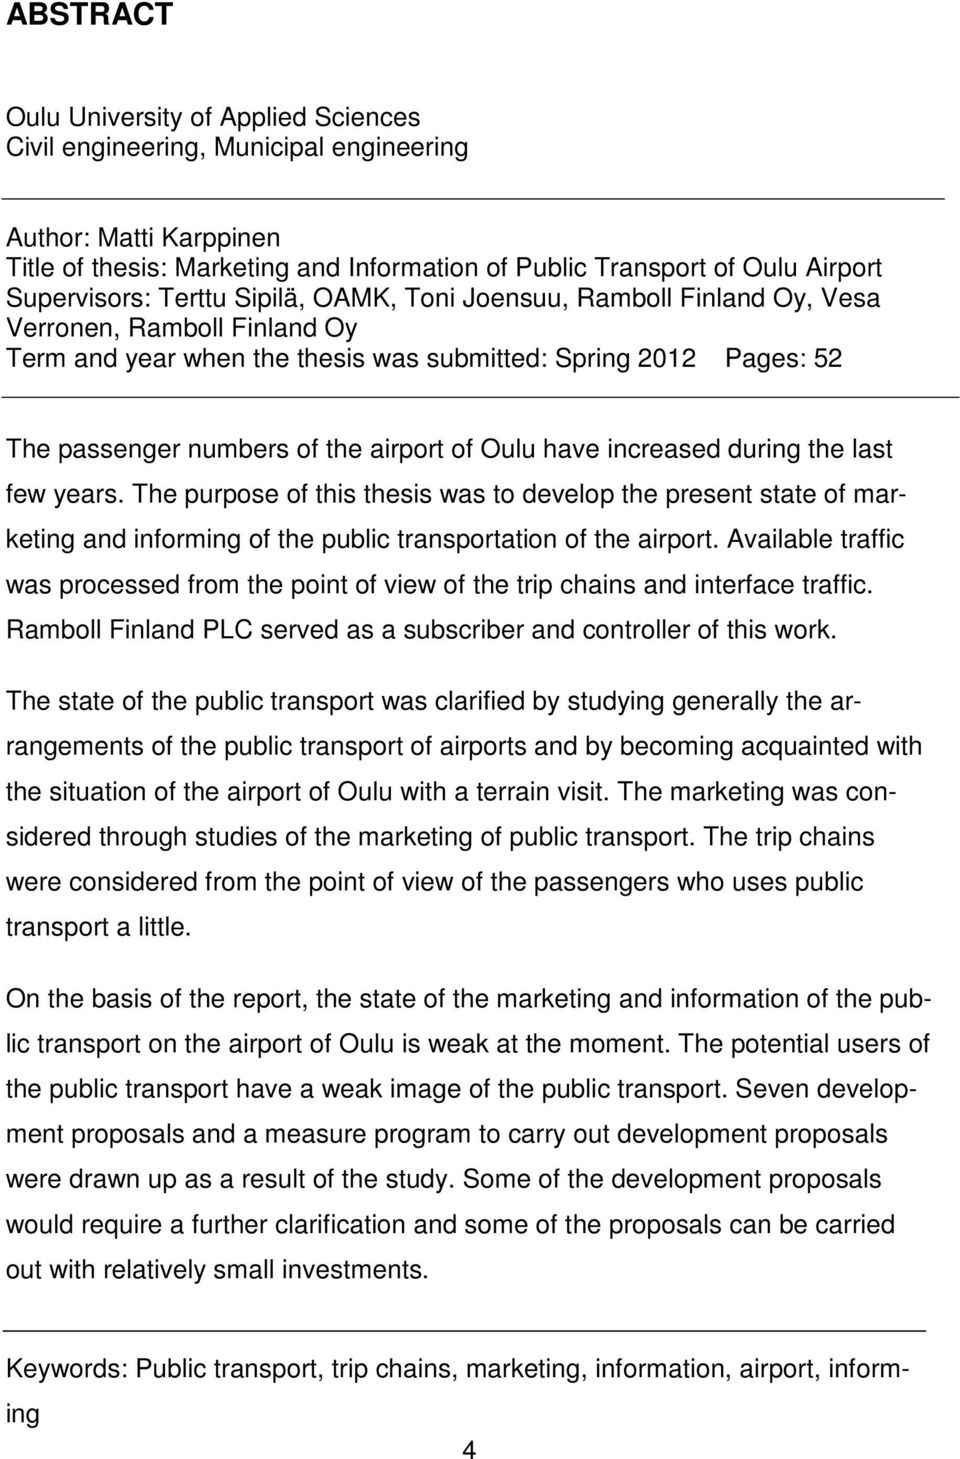 airport of Oulu have increased during the last few years. The purpose of this thesis was to develop the present state of marketing and informing of the public transportation of the airport.